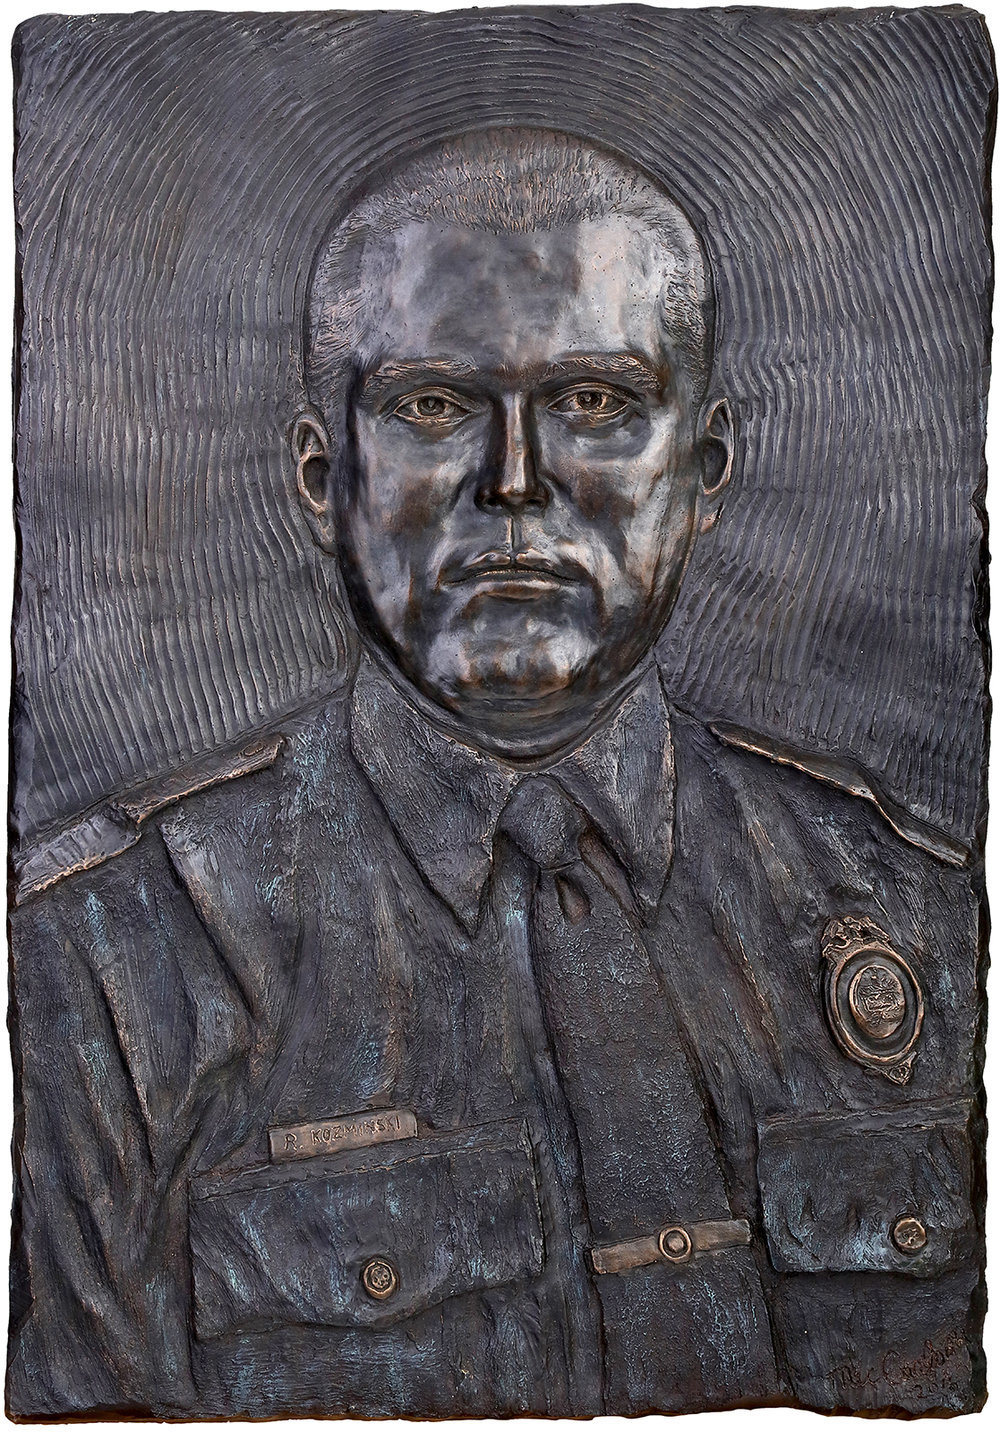 """Officer Robert Kozminski - Original 24"""" x 30"""" Bronze24"""" x """"30 and 9"""" x 12"""" replicas hand made by Mic available to purchase please Call or email MicMemorial Location Richmond Park Grand Rapids, Michigan."""